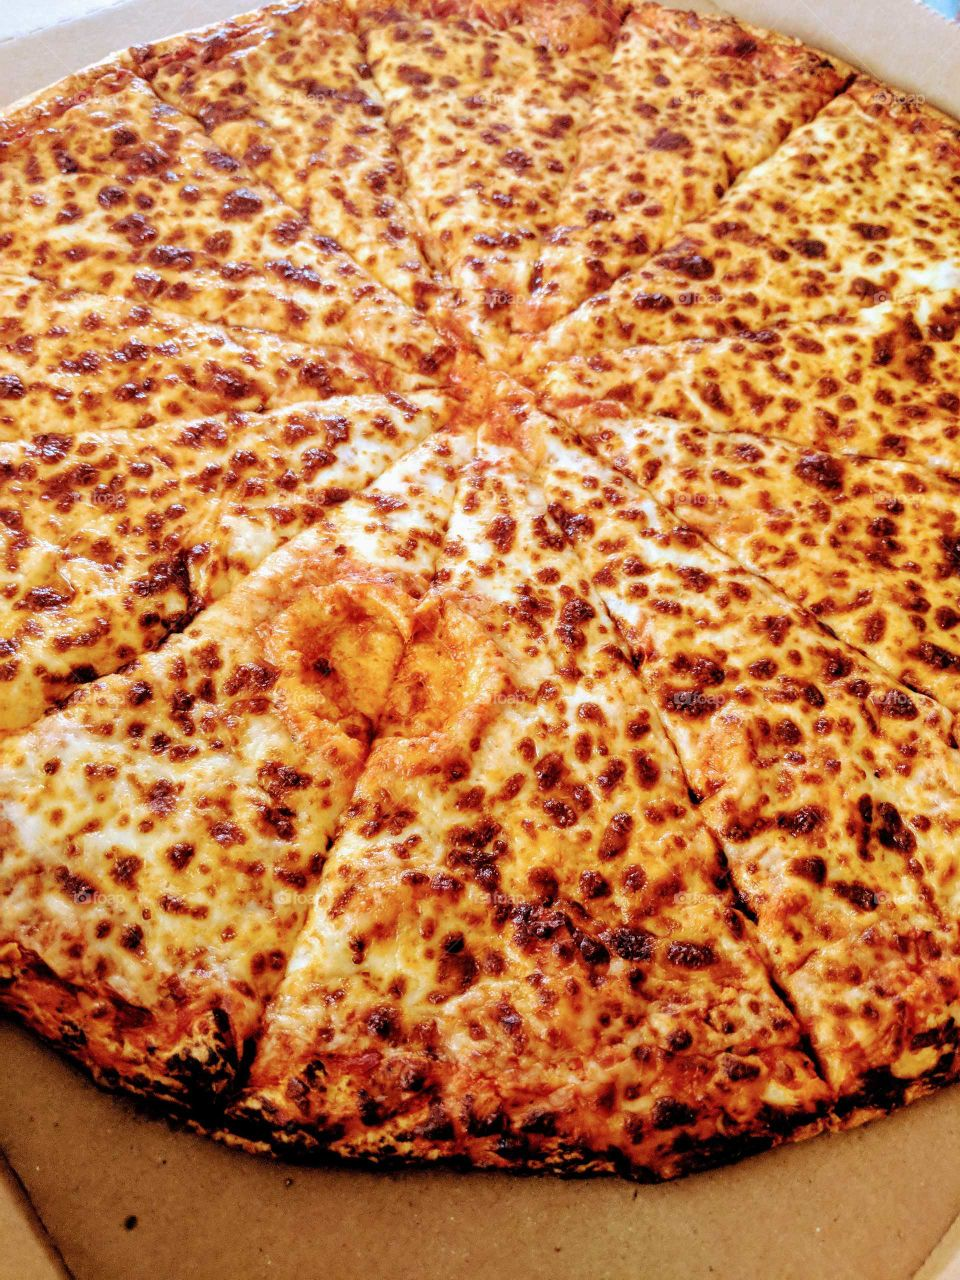 I love pizza!!! can you see the heart?lol